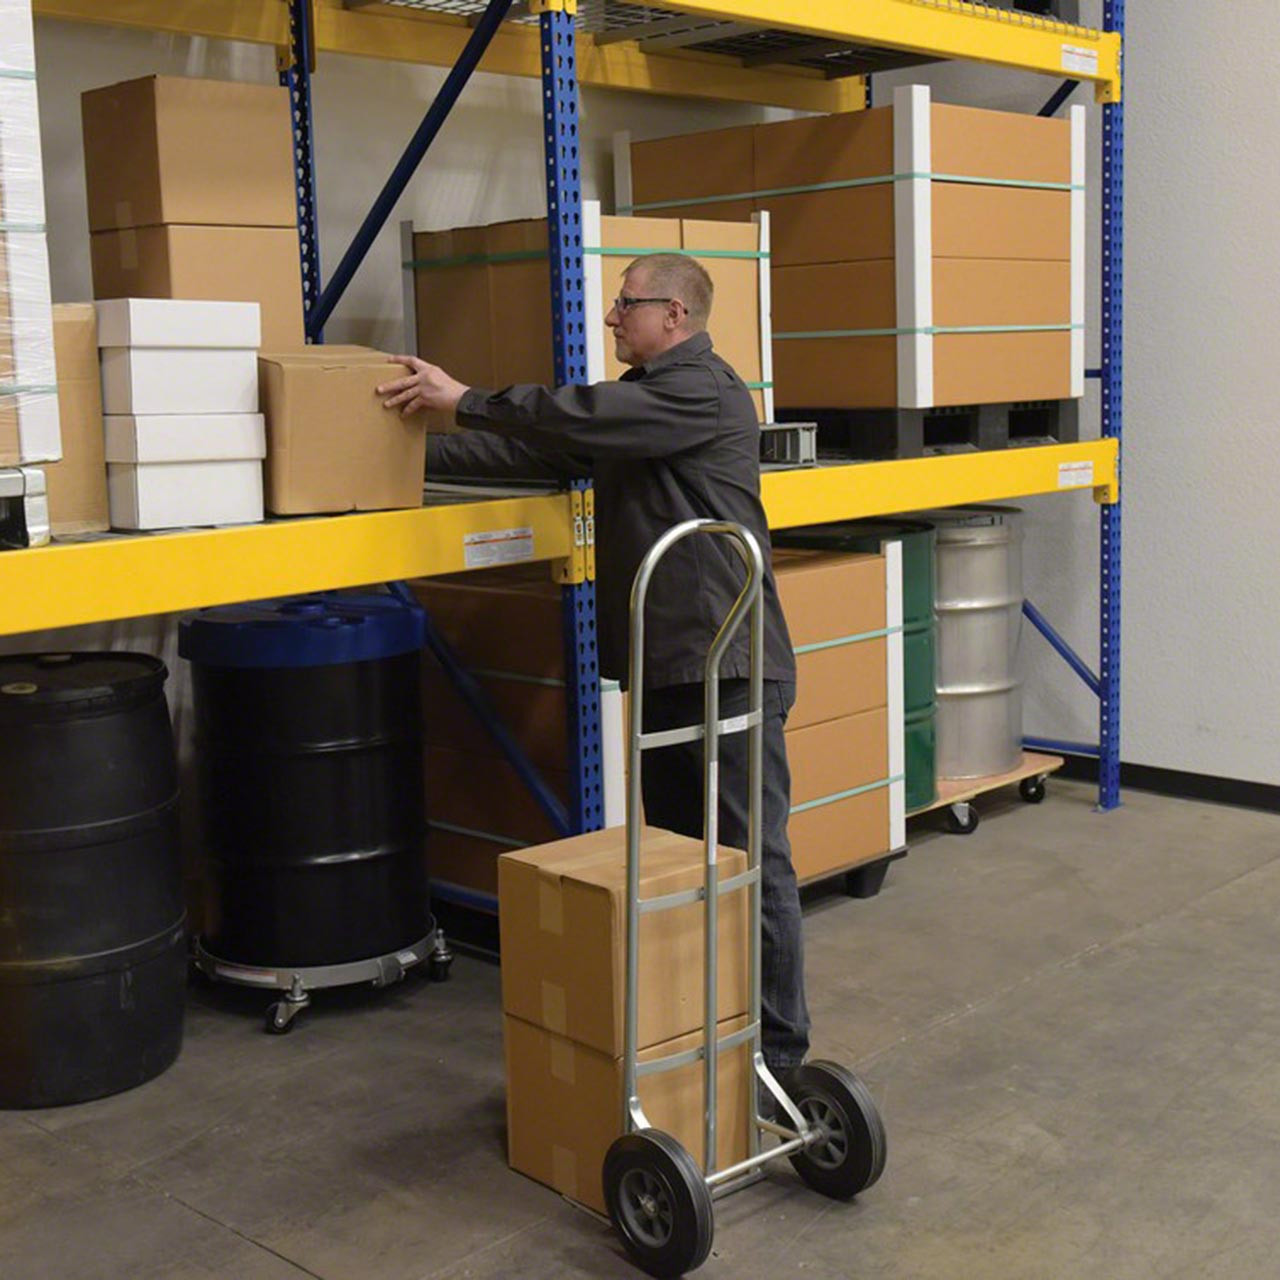 Steel P Handle Hand Truck with Hard Rubber Wheels With Stacked Boxes